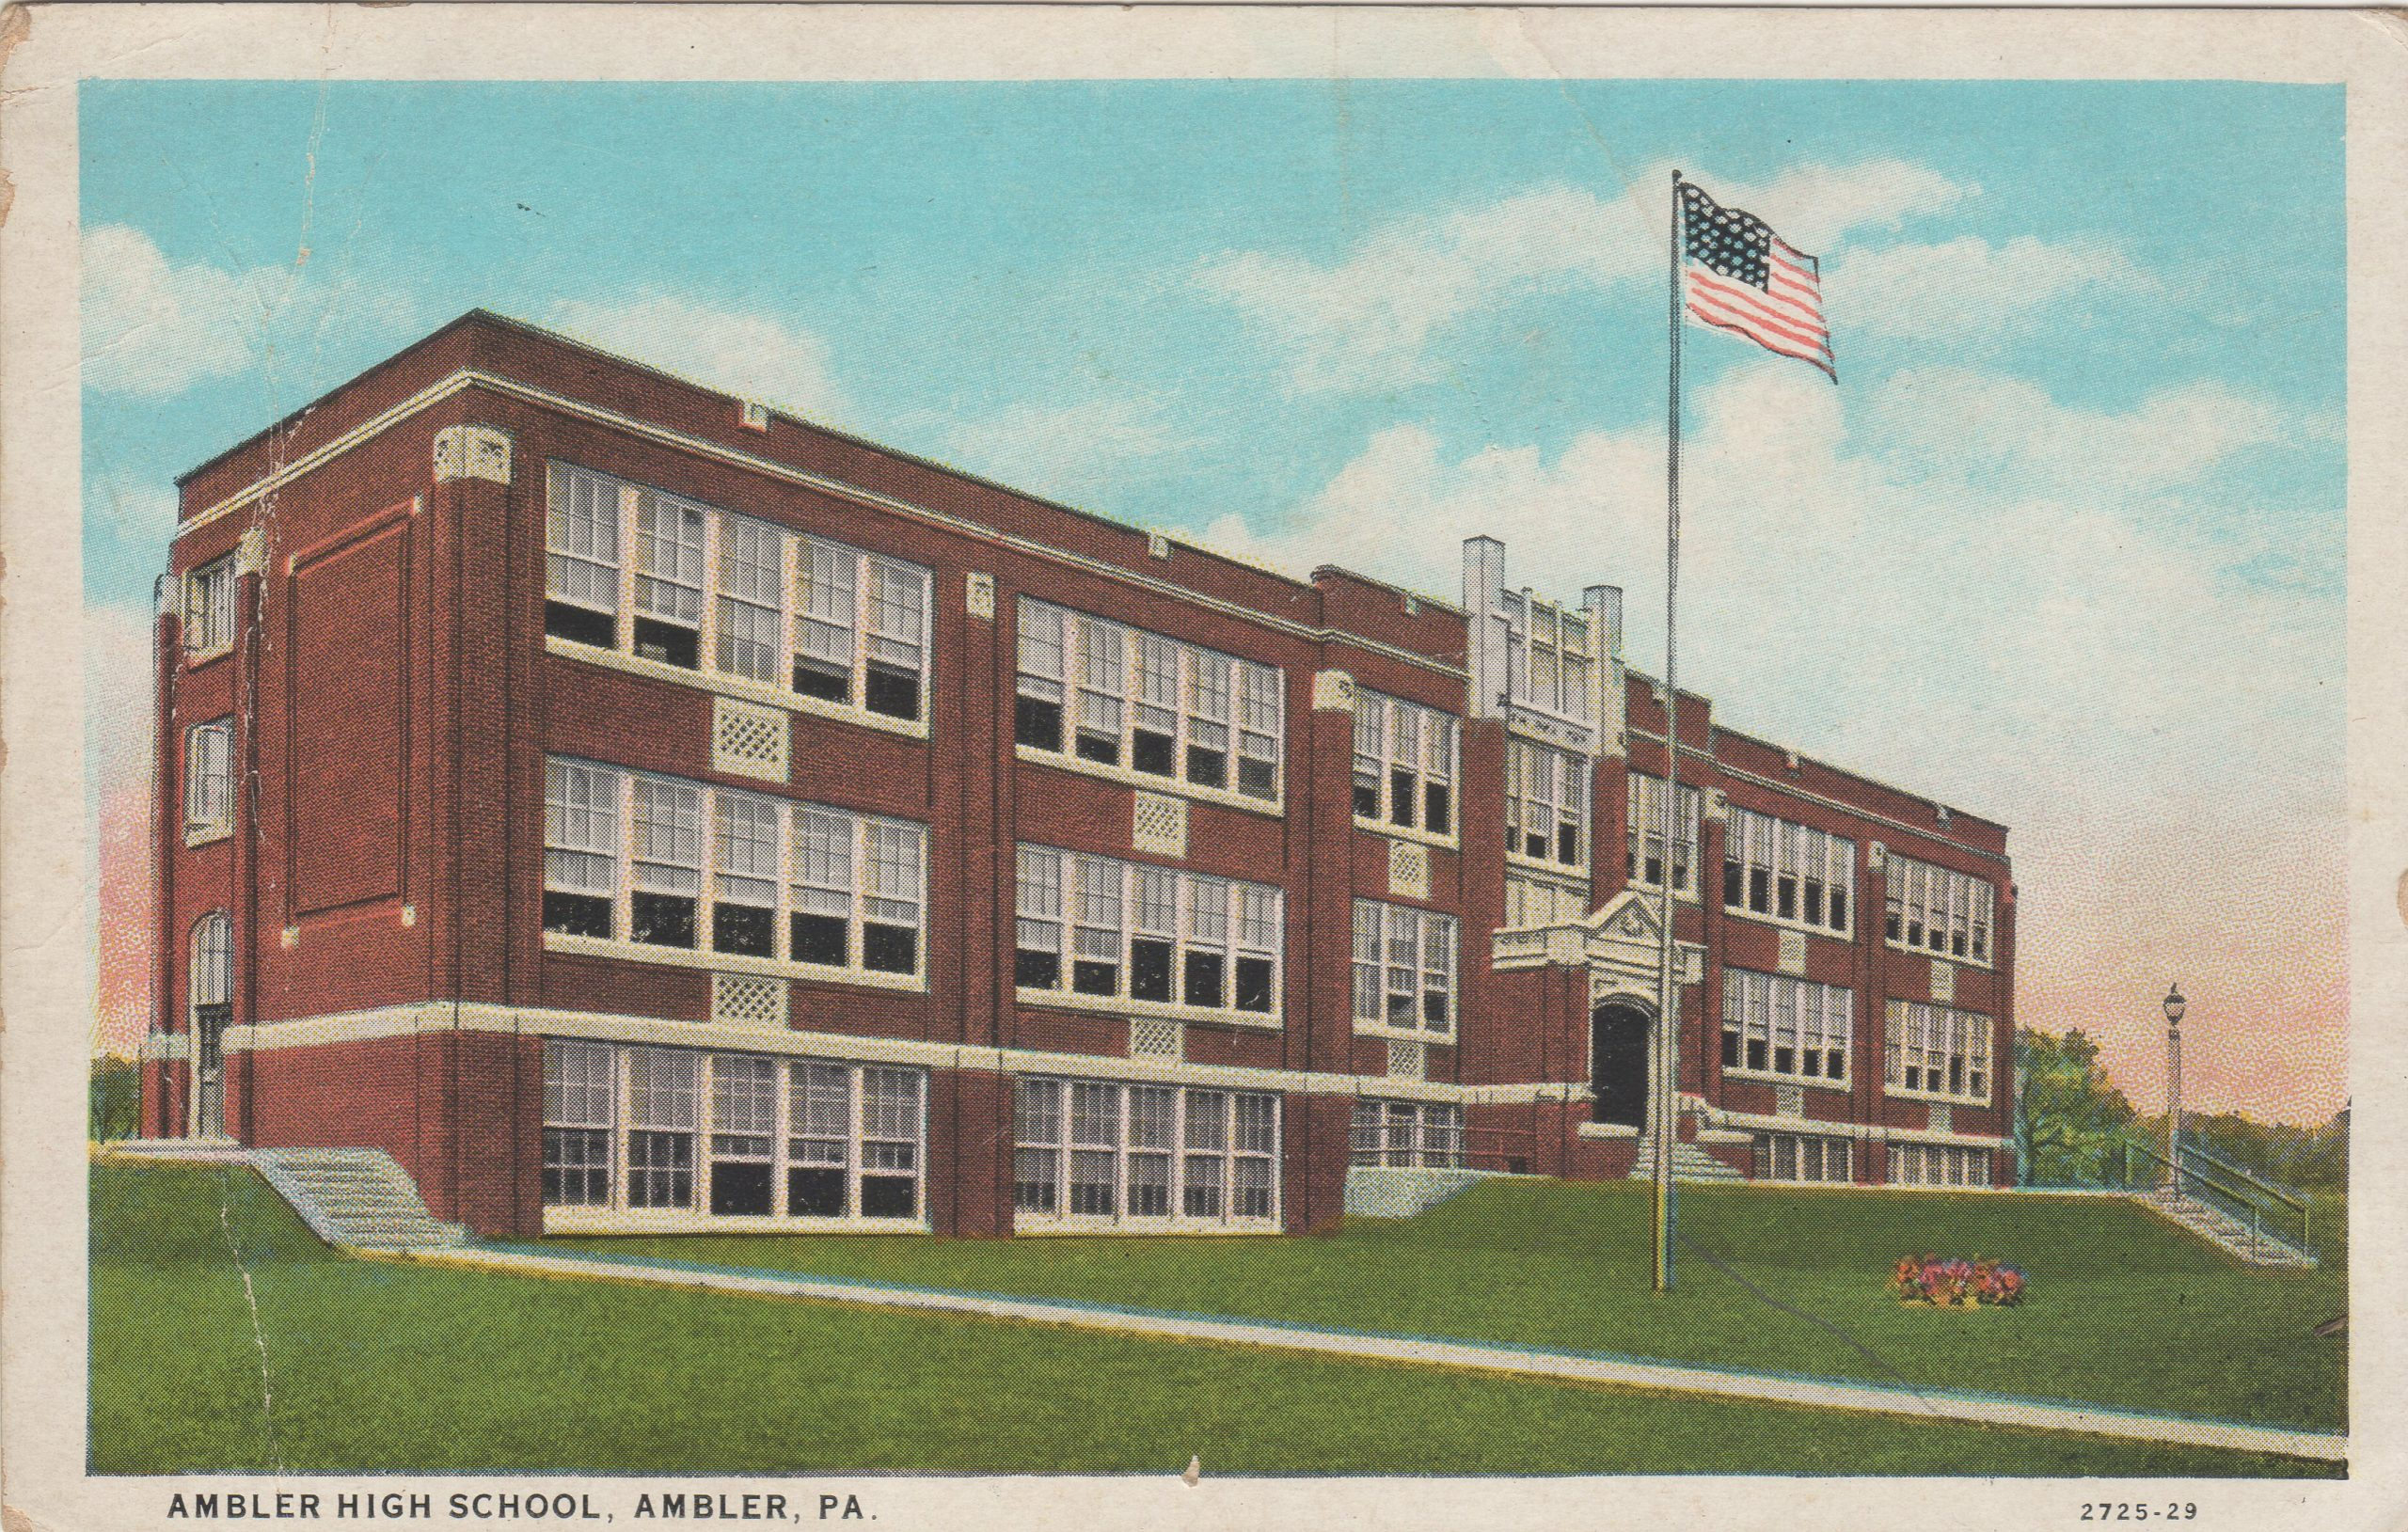 4125.4 Ambler Pa Postcard_Ambler High School (2)